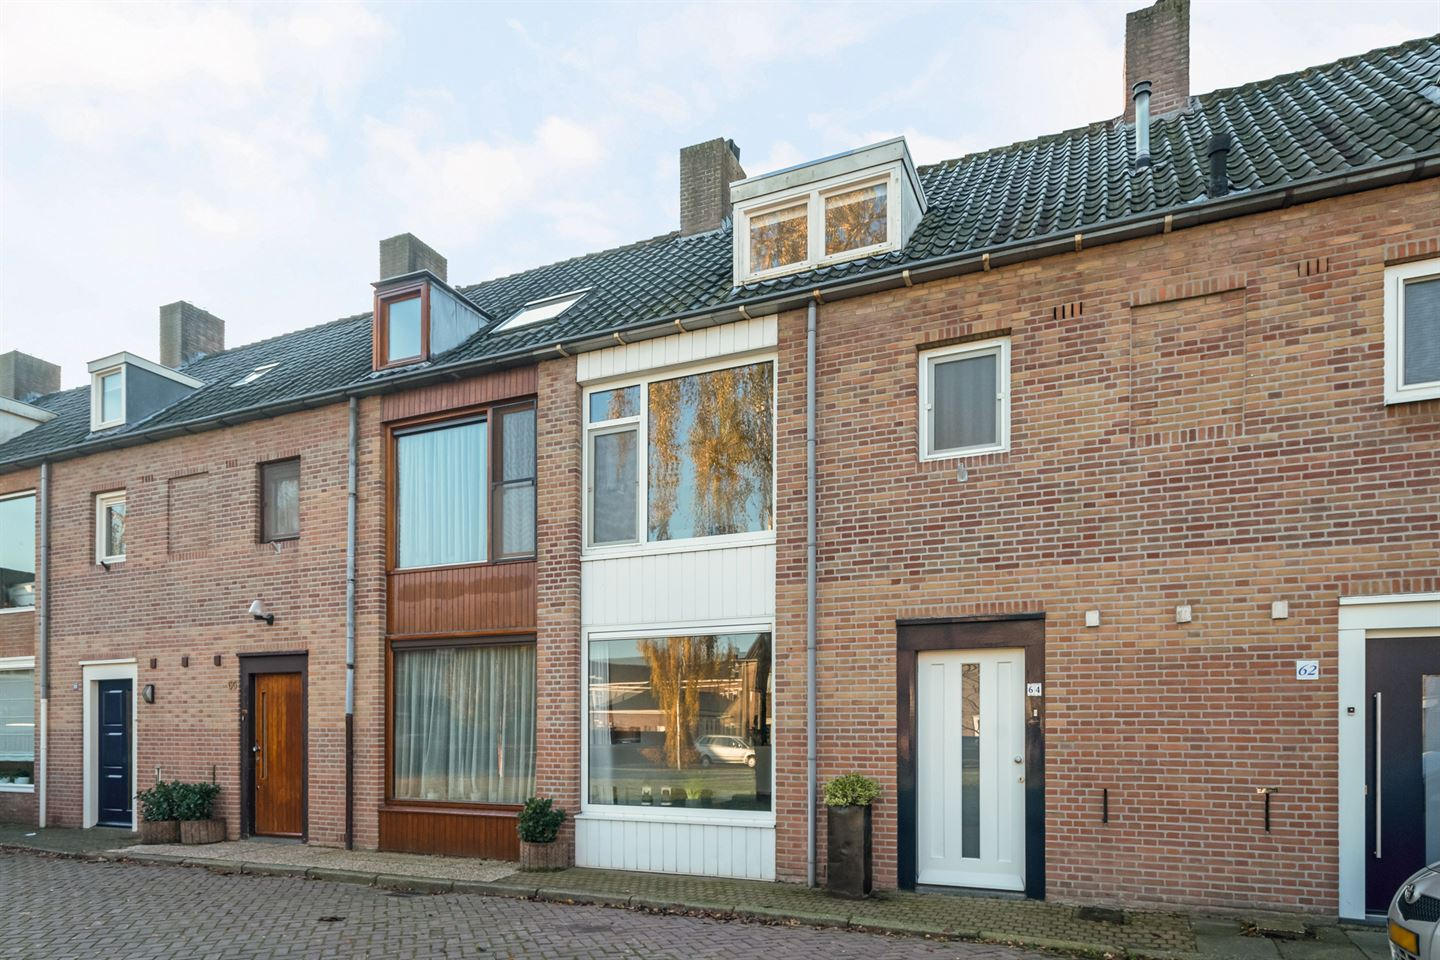 View photo 1 of Ruusbroecstraat 64